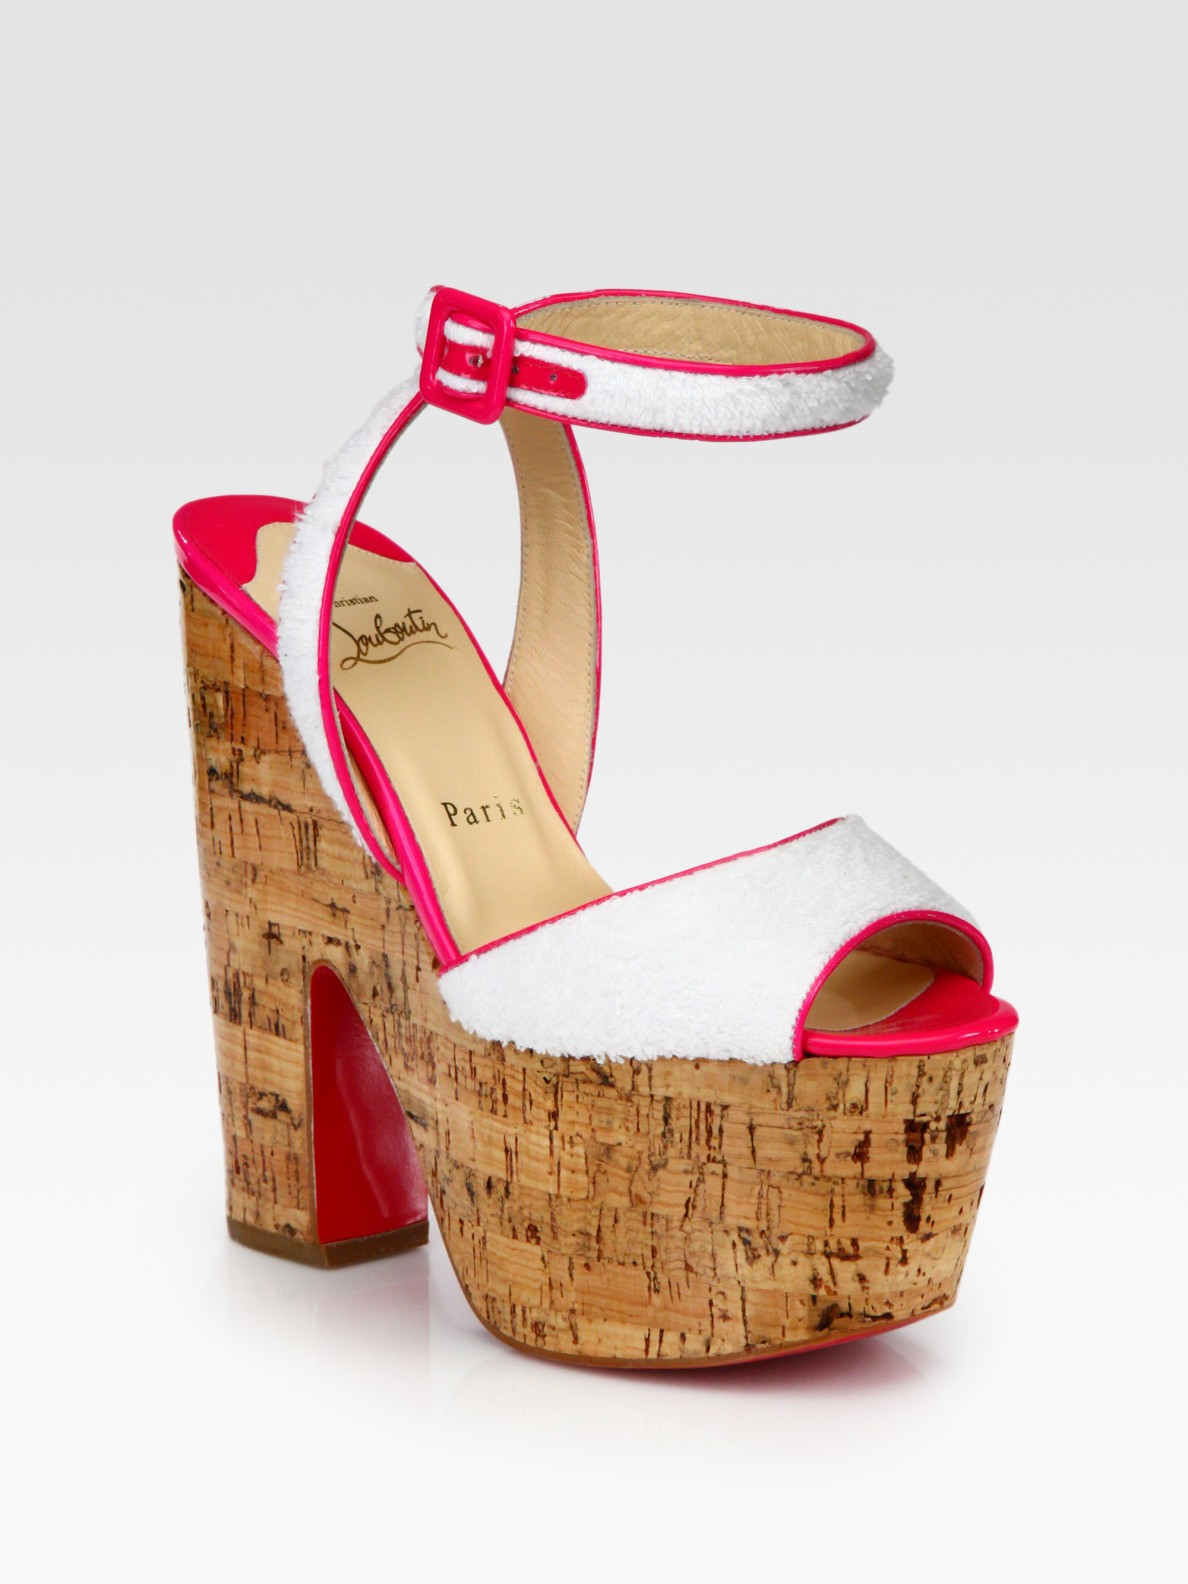 christian louboutin platform sandals Ivory terry cloth covered ...